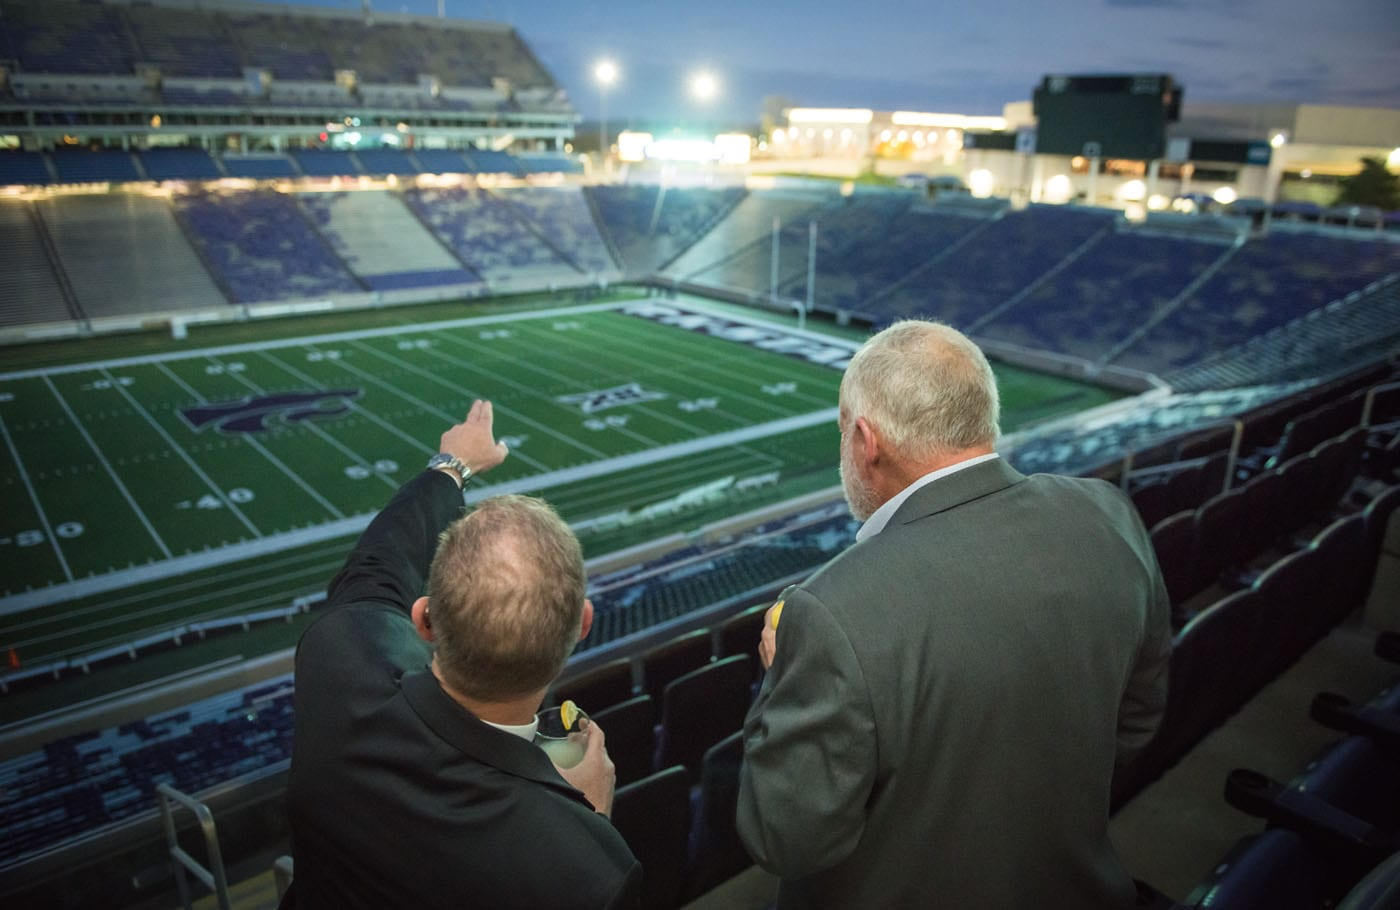 Two men face away from the camera as they look out over the football field in the Bill Snyder Family Stadium.